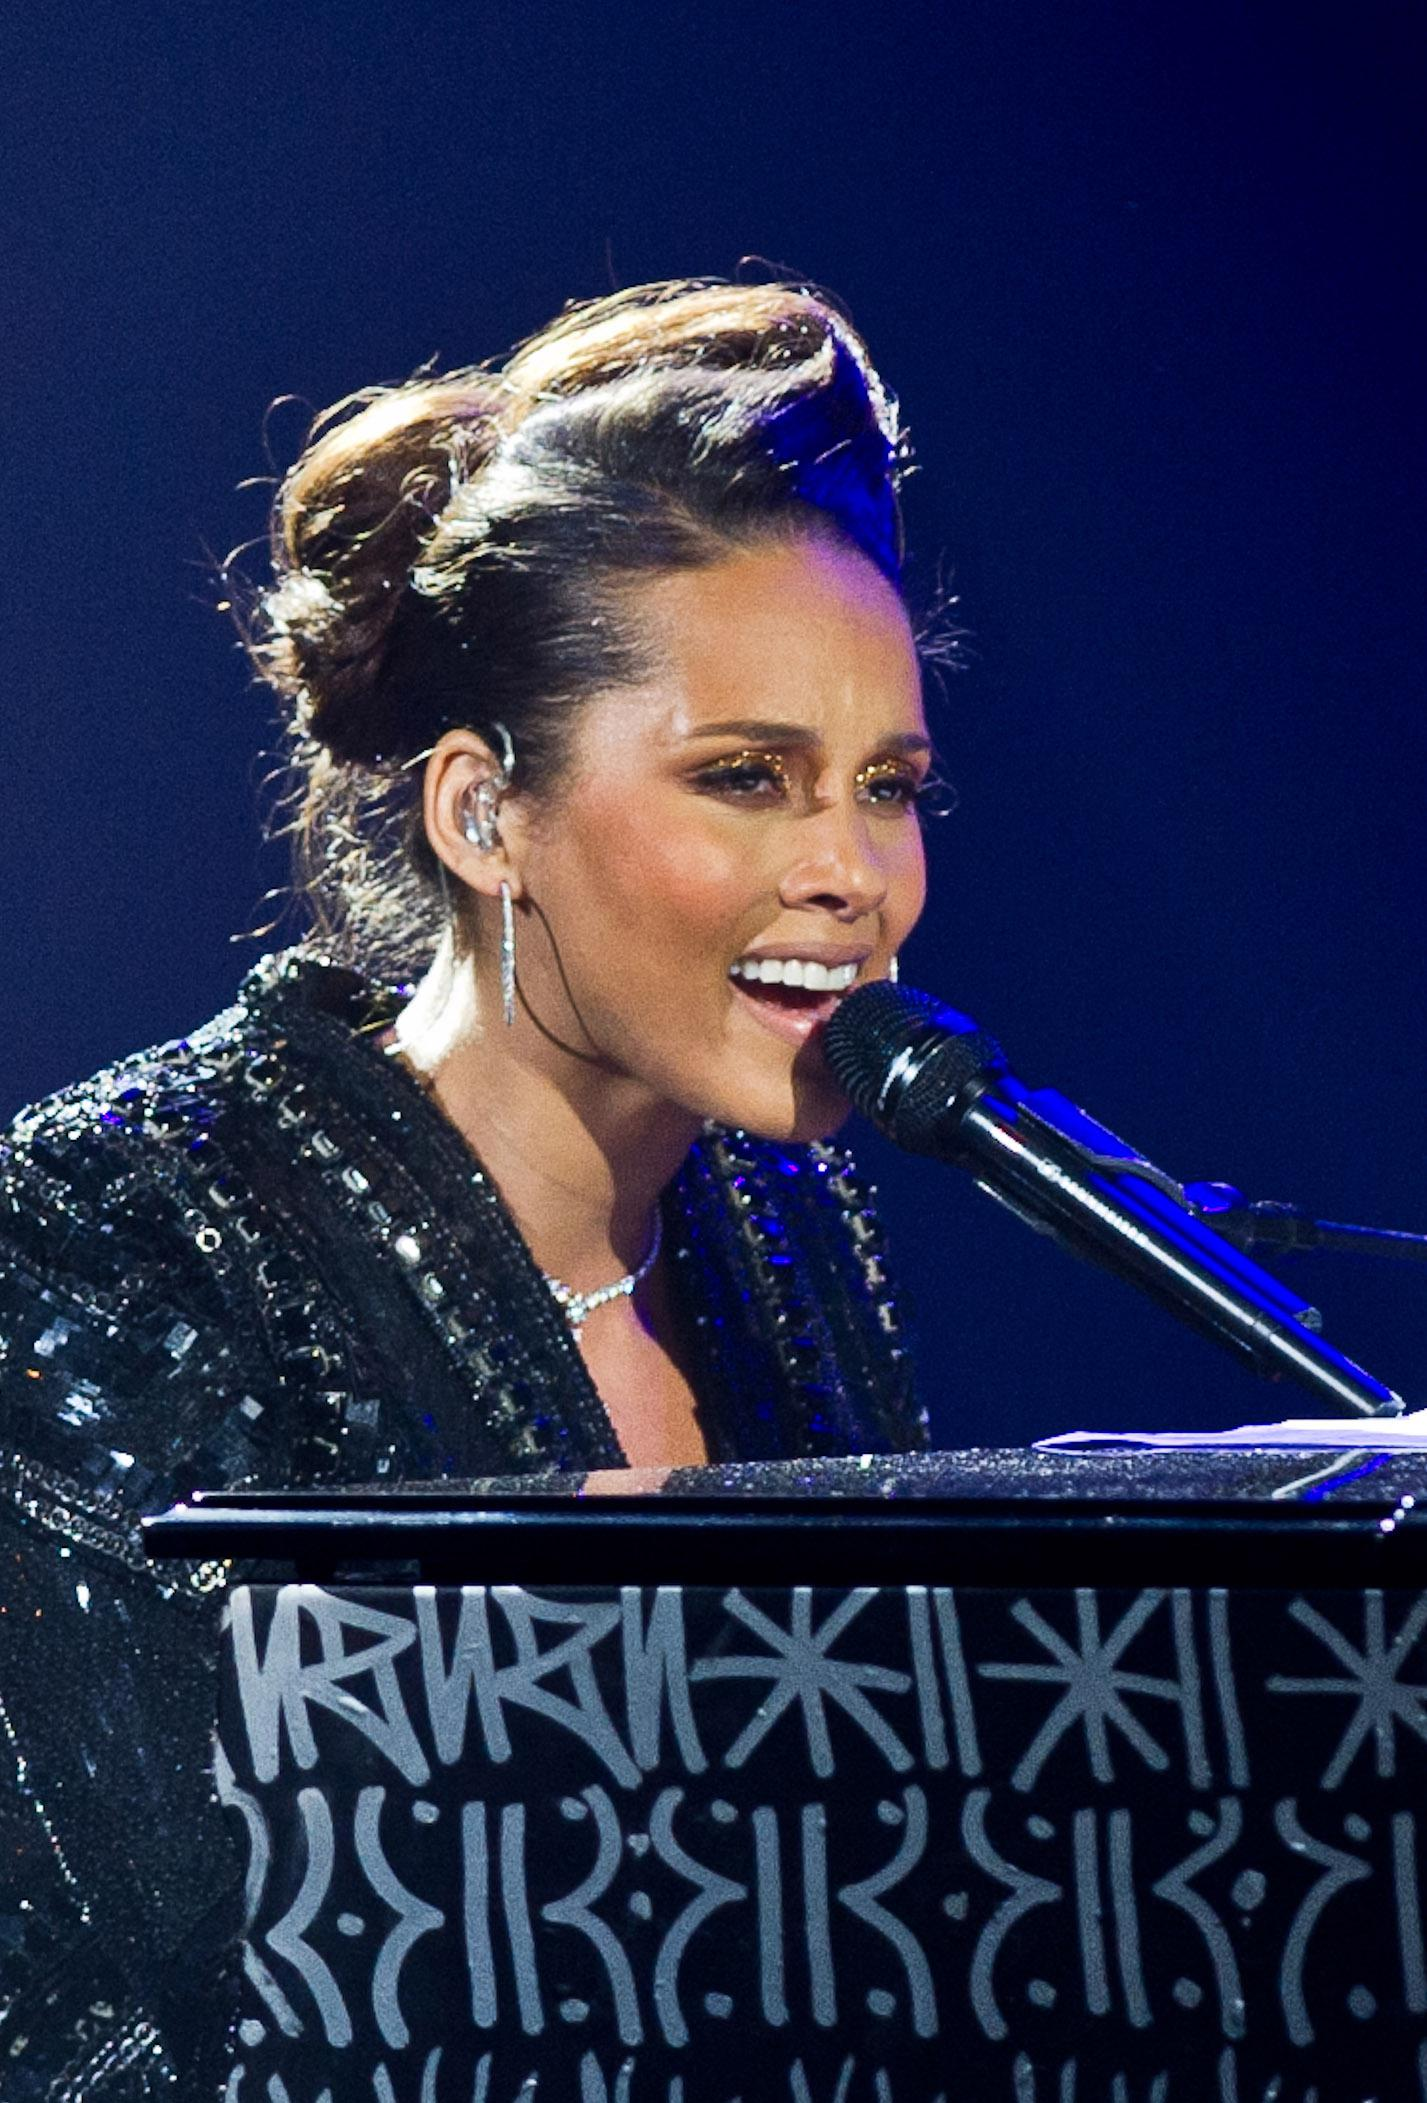 Alicia Keys In Concert At Palais Des Congres